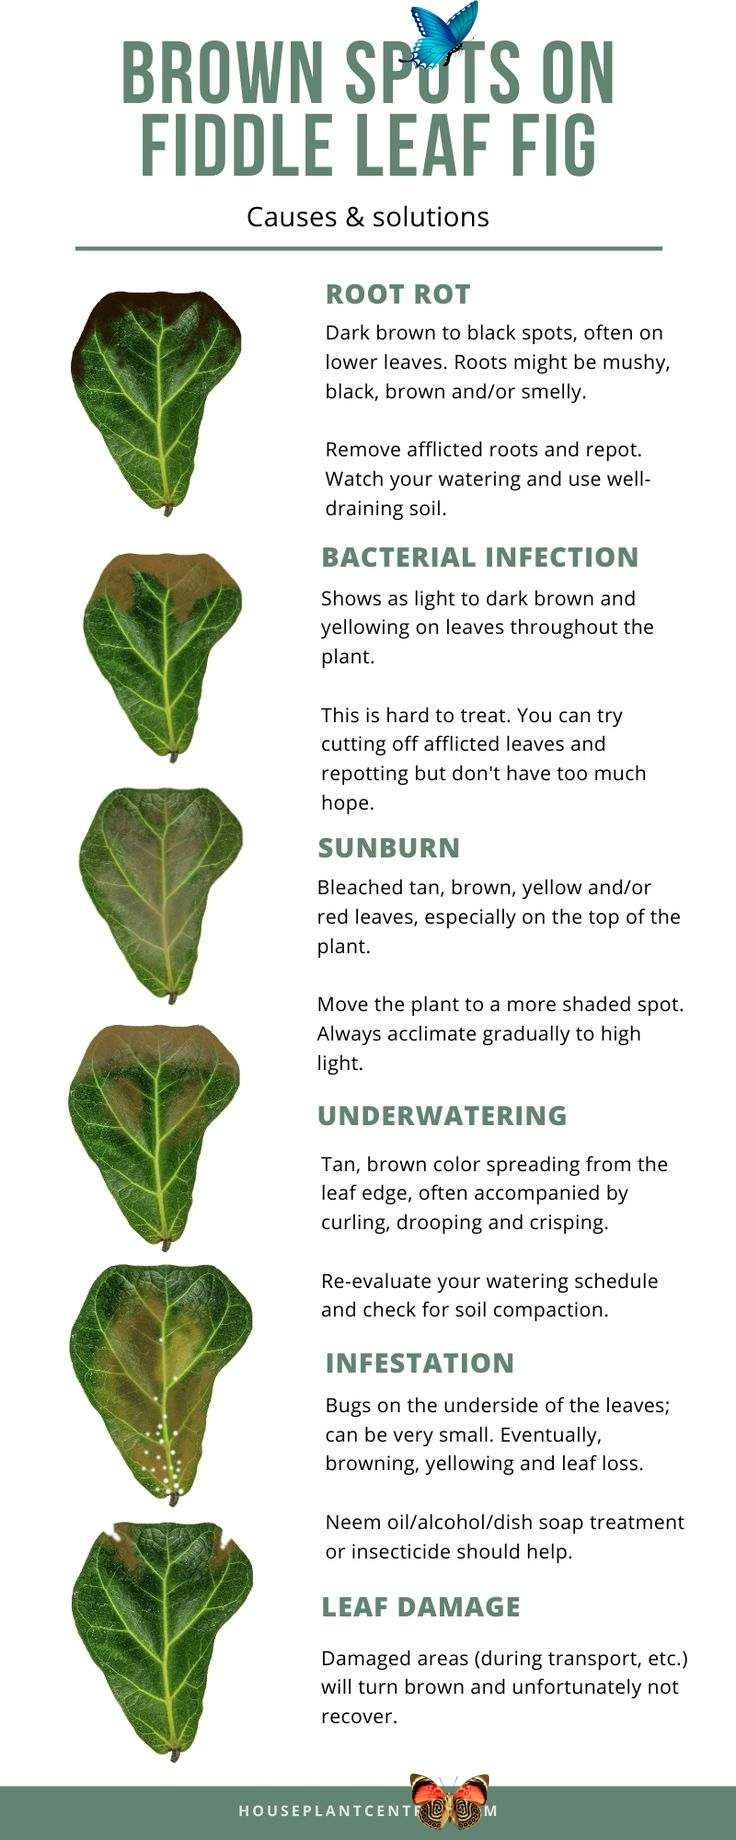 Common Fiddle Leaf Fig Problems With Visual Guide Houseplant Central Is Your Fiddle Leaf Fig Houseplant Not Looking So Hot Figur En 2020 Jardinage Jardins Nature